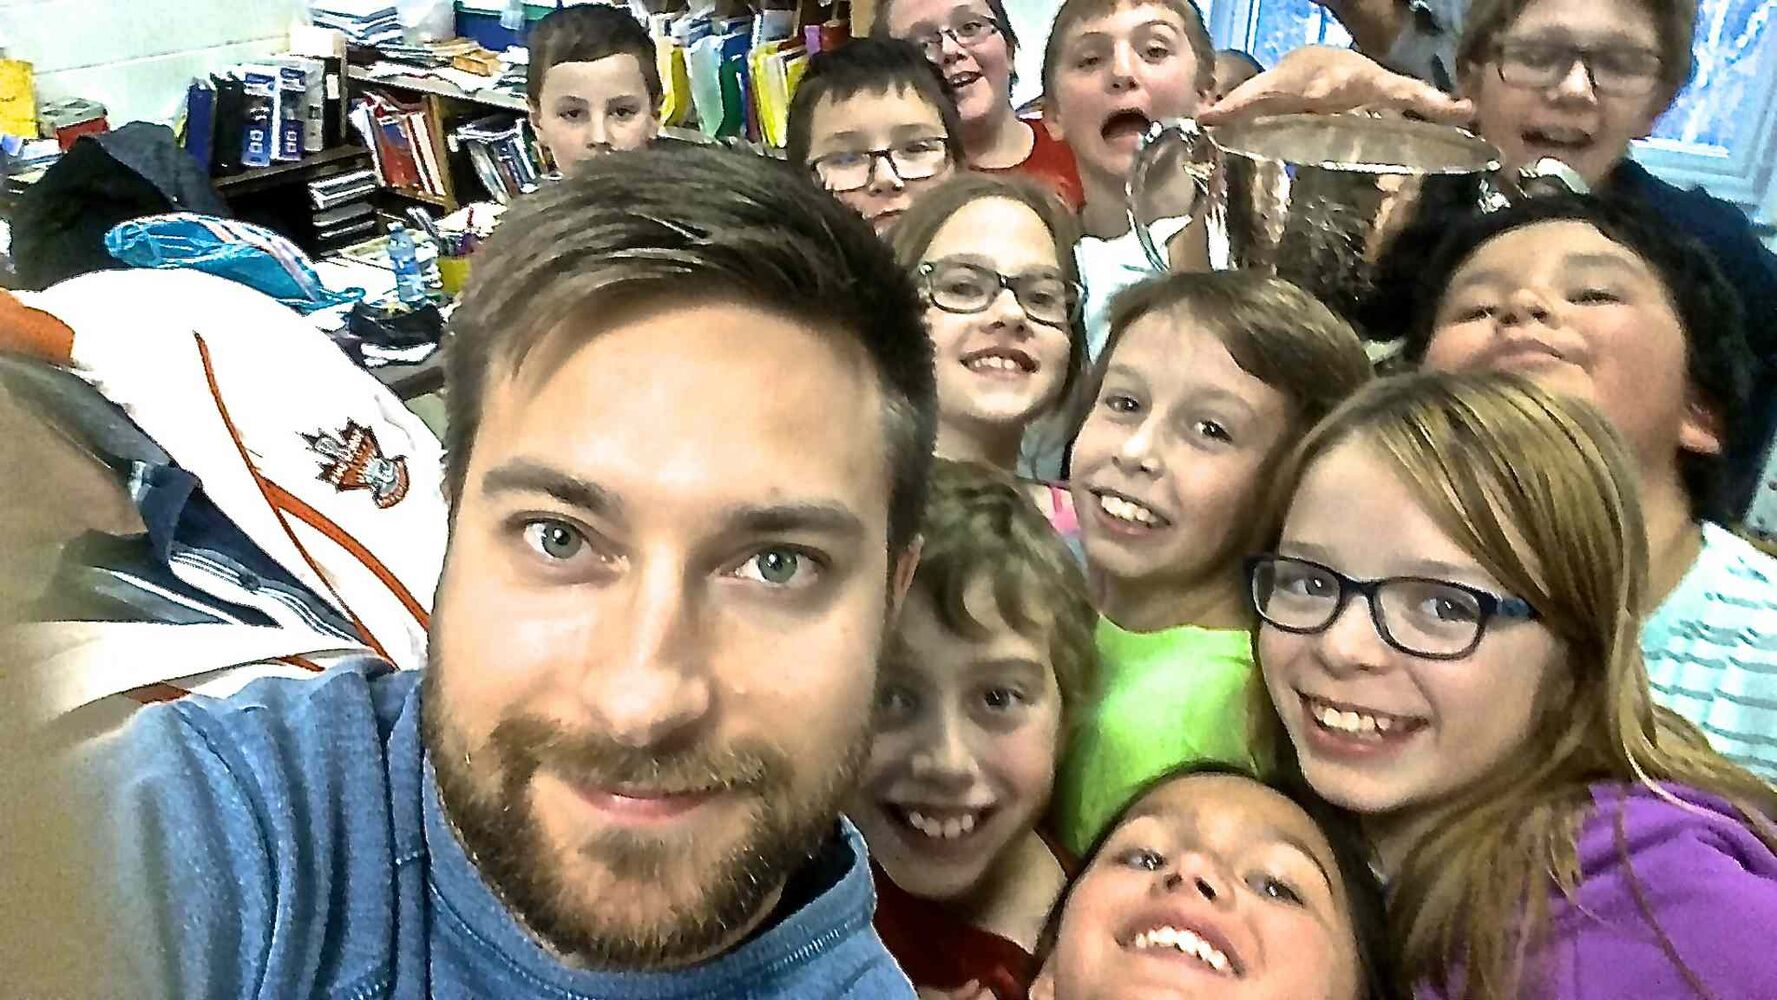 Winnipeg Free Press sports reporter Jeff Hamilton poses for a selfie with Grade 5 and 6 students at Joseph H. Kerr School in Snow Lake. The trophy was in town as part of an eight-day tour through northern Manitoba to help promote the Grey Cup game in Winnipeg this year.